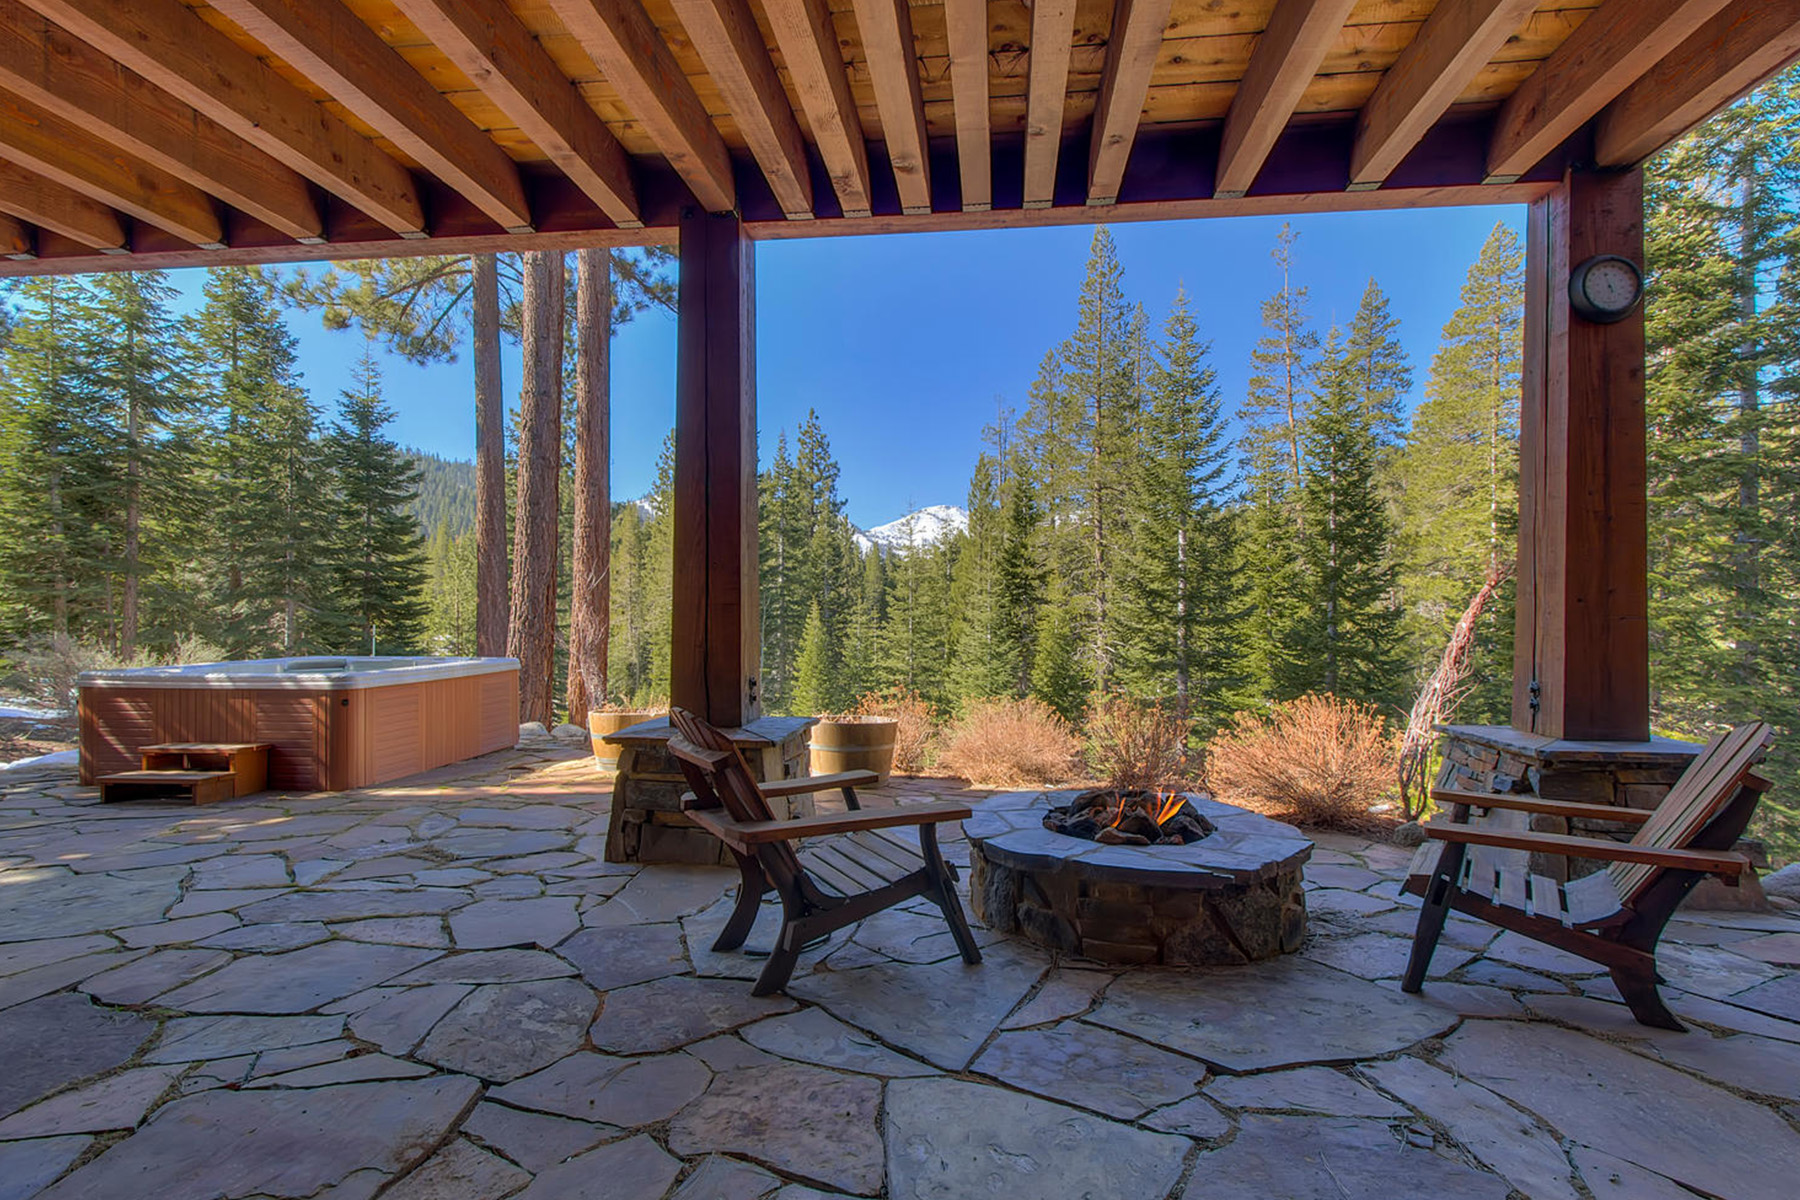 Additional photo for property listing at 115 Creekview Court, Olympic Valley, Ca 96146 115 Creekview Court Olympic Valley, California 96146 United States